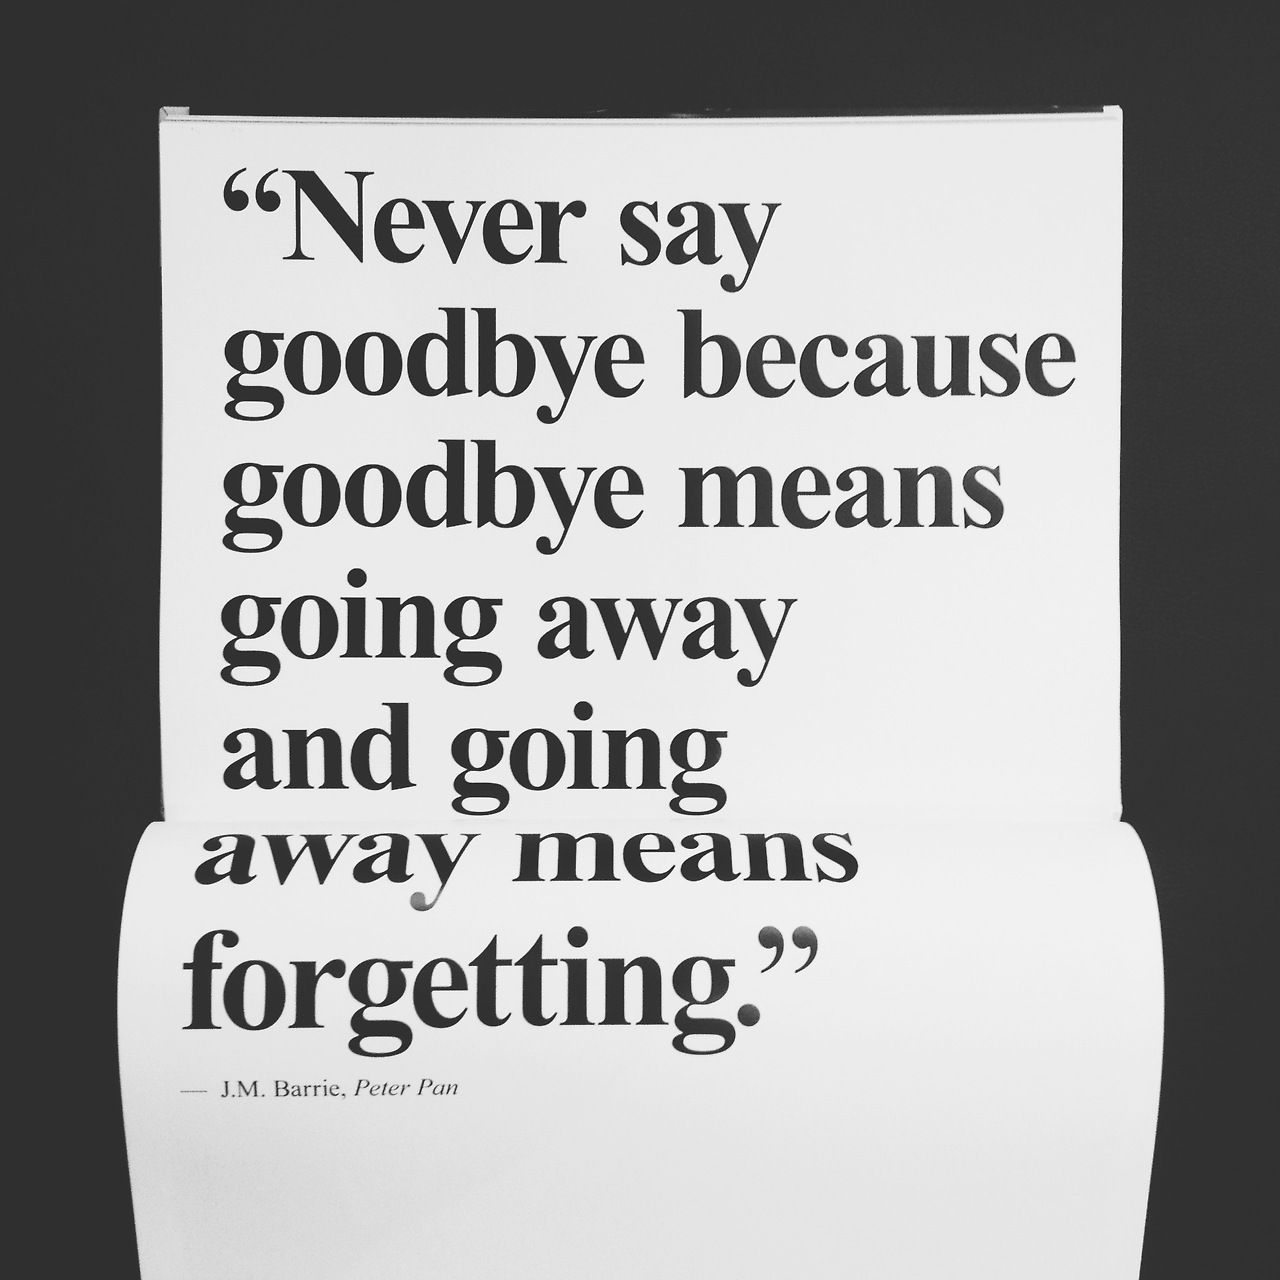 Saying Goodbye To Your Ex Quotes: Ex-boyfriend-quotes-hd-wallpaper-2.jpg (1280×1280